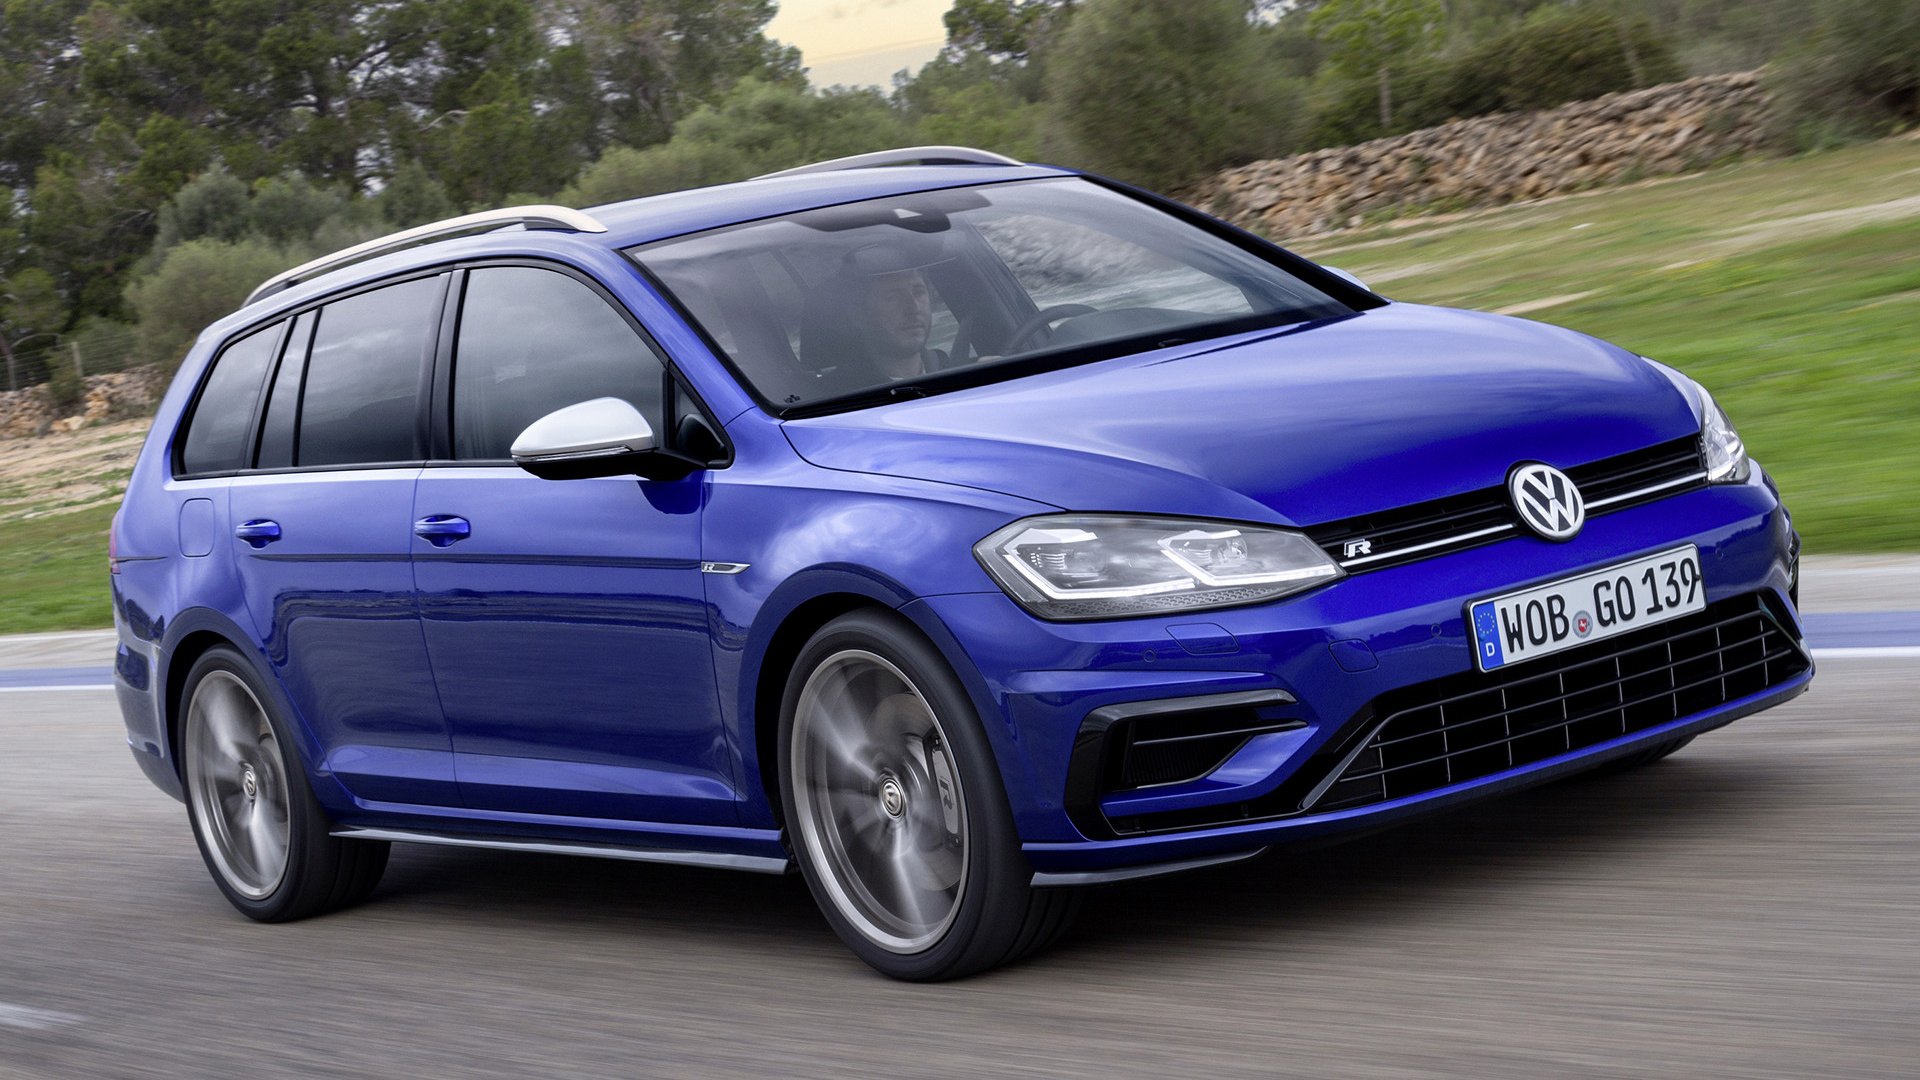 2017 Volkswagen Golf R Variant - Wallpapers and HD Images ...